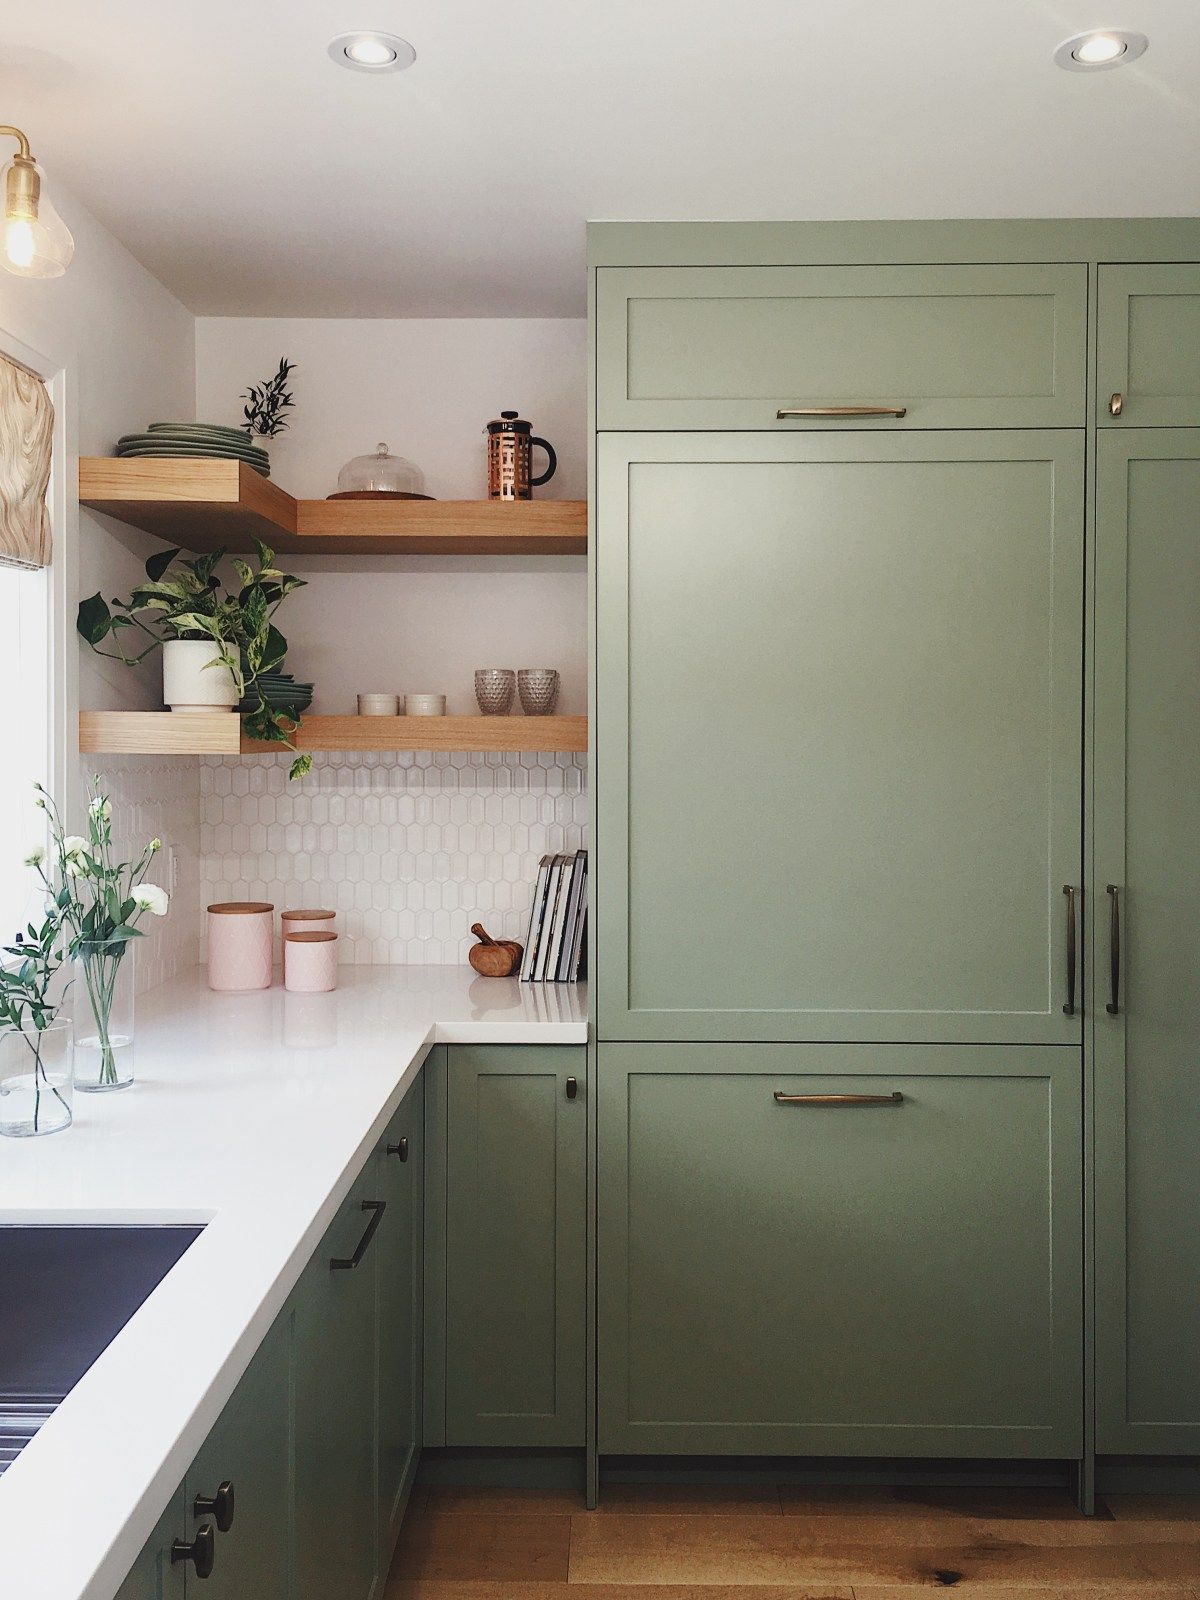 Sage Green Cabinets Brass Gold Hardware And Open Wood Shelving In A Kitchen For Hgtv Green Cabinets Kitchen Cabinet Inspiration Kitchen Remodel Small